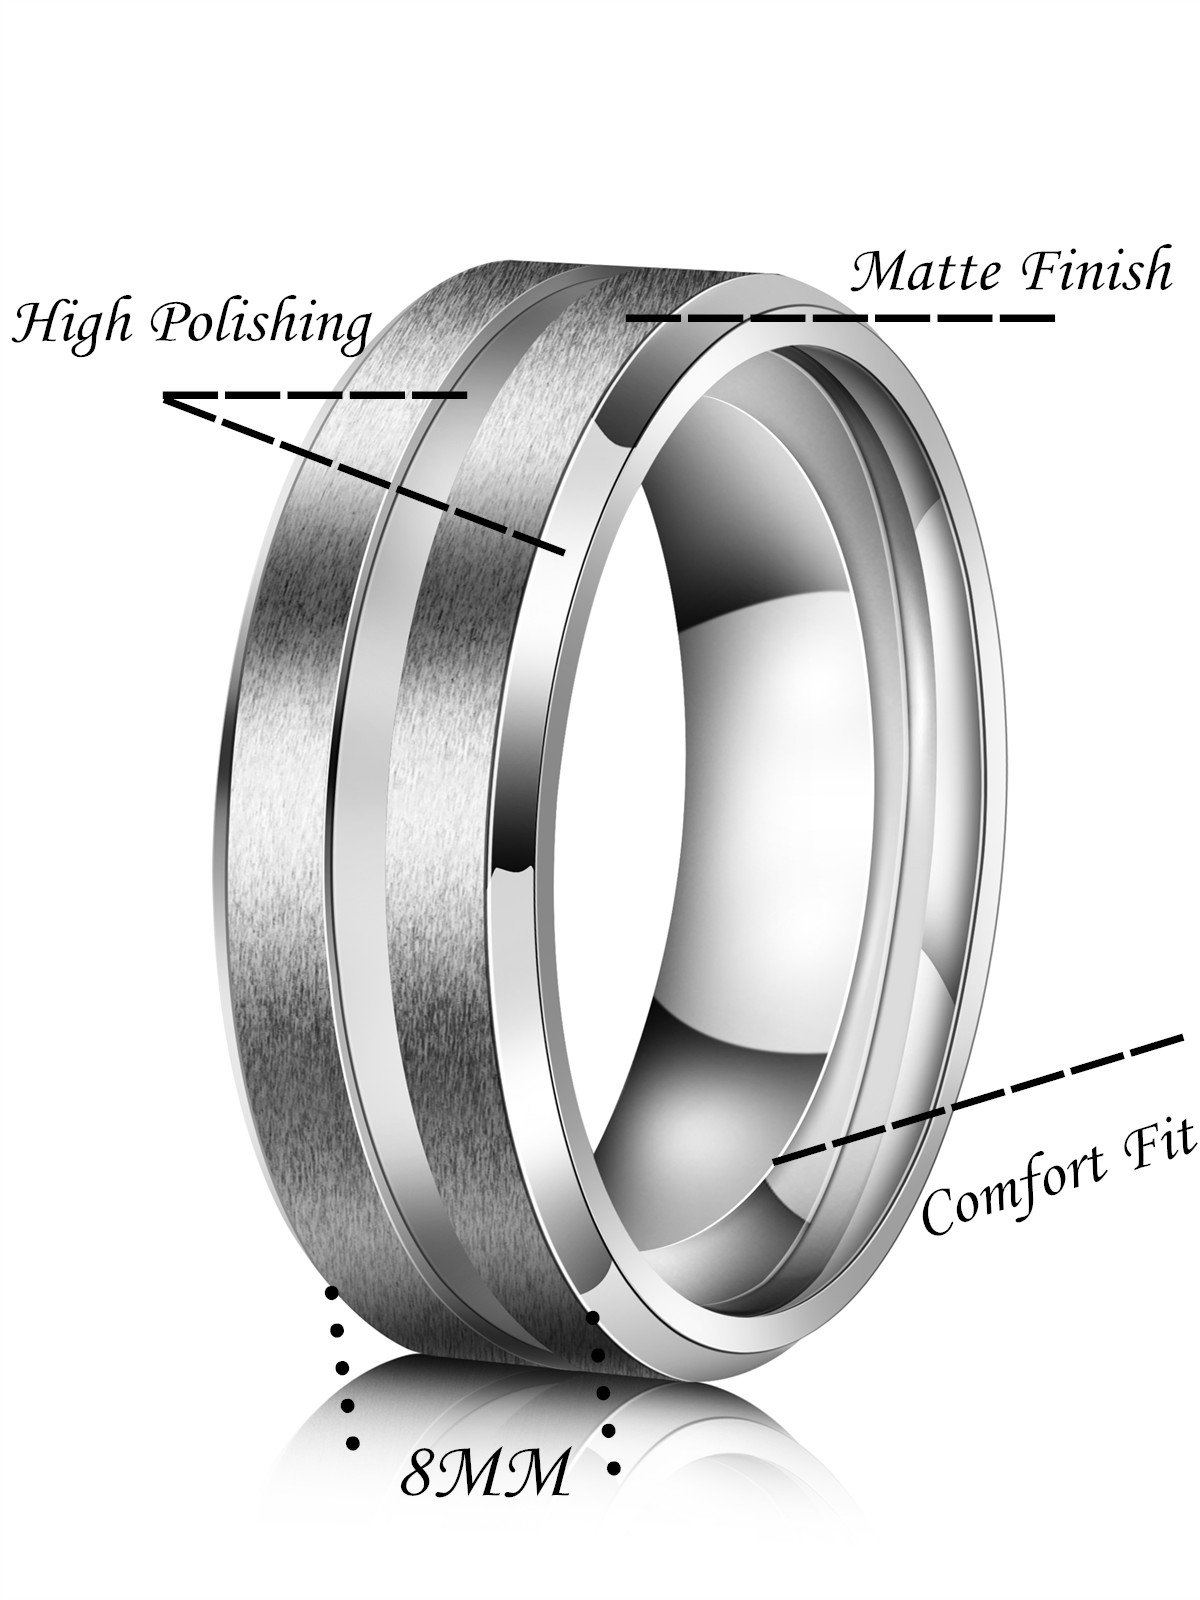 Just Lsy 8mm Titanium Rings for Men Women Beveled Edges High Polished Grooved Center/Matte Finish Wedding Band in Comfort Fit Size 10 Lsy-004 by Just Lsy (Image #3)